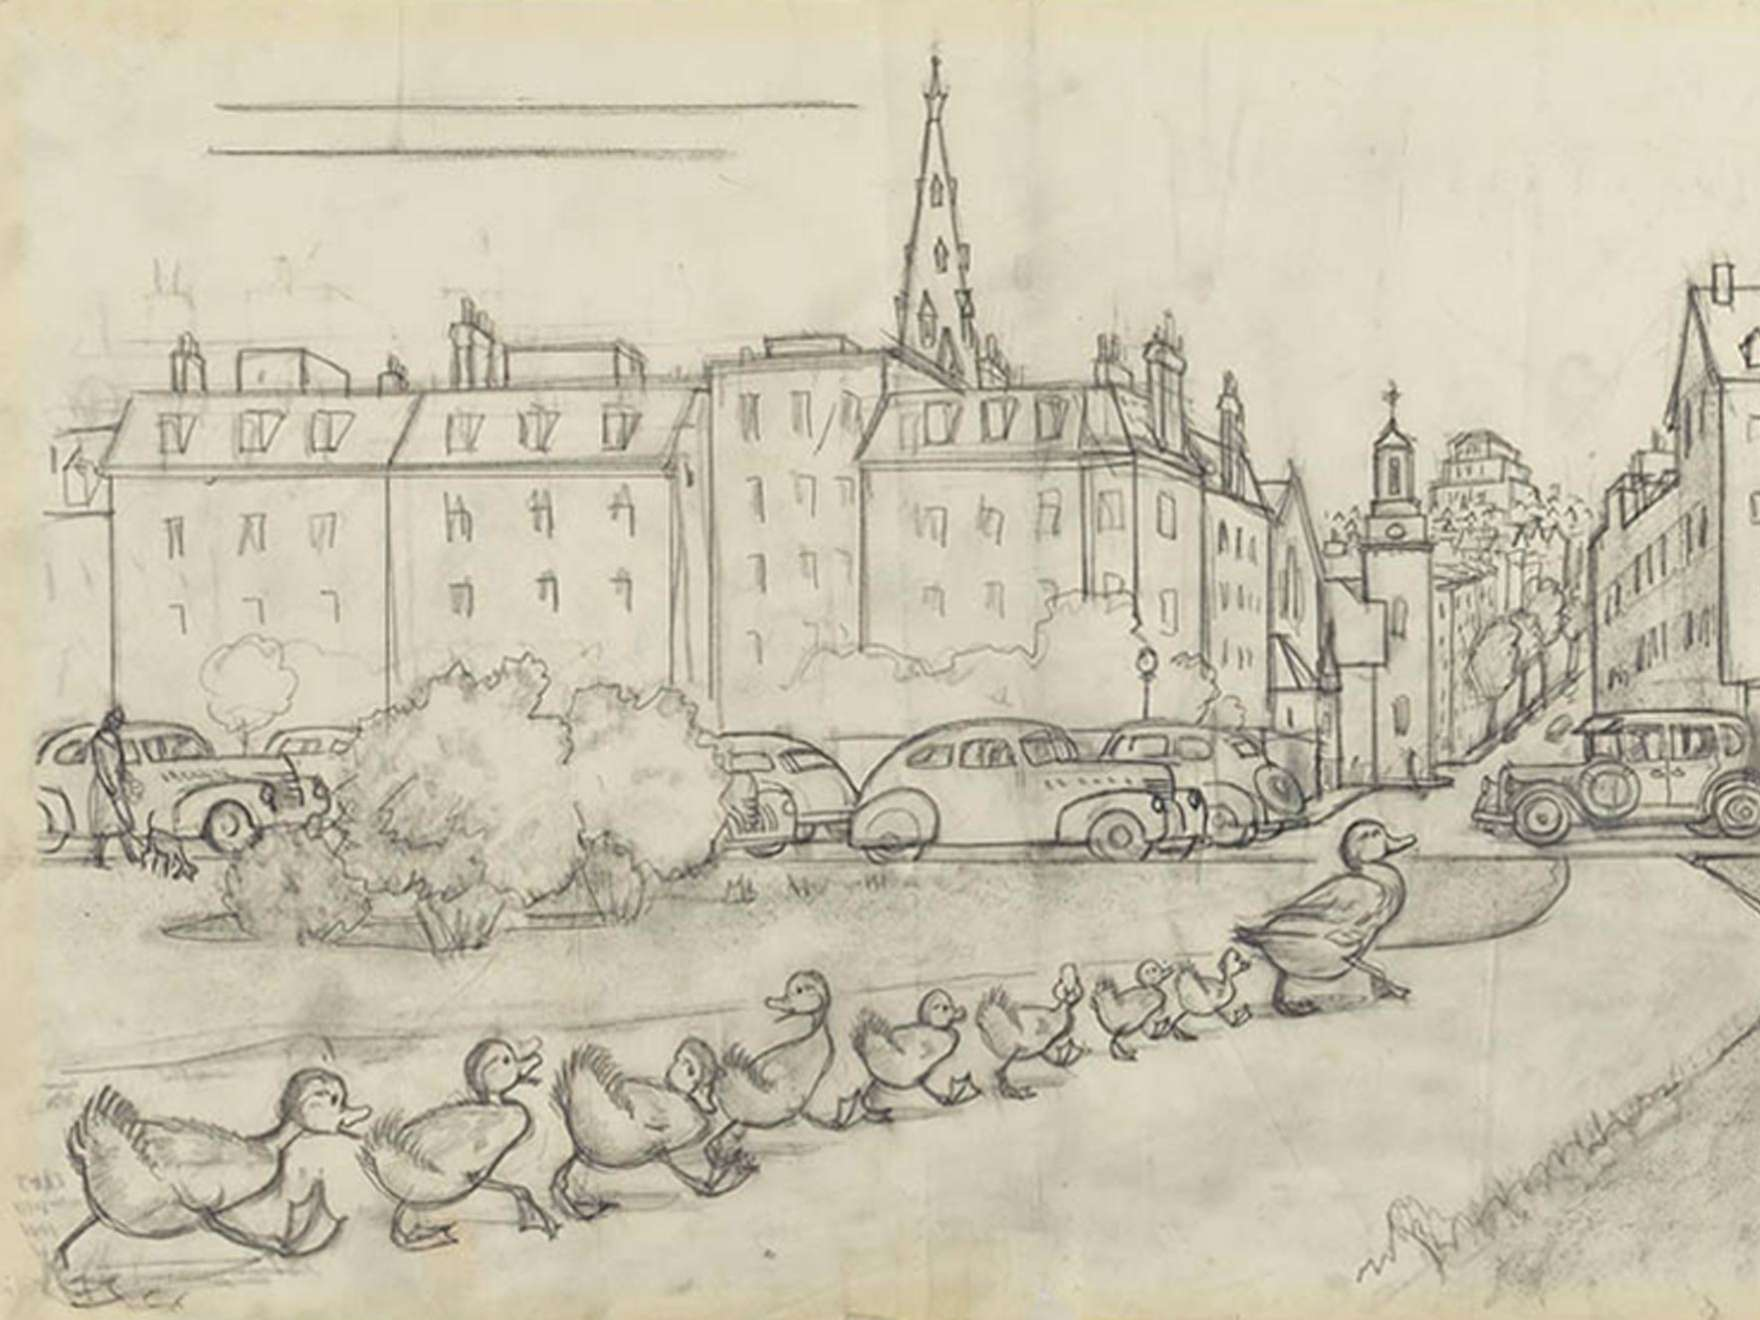 """Robert McCloskey's drawing for Make Way for Ducklings (""""There they waded ashore and waddled along till they came to the highway"""")"""